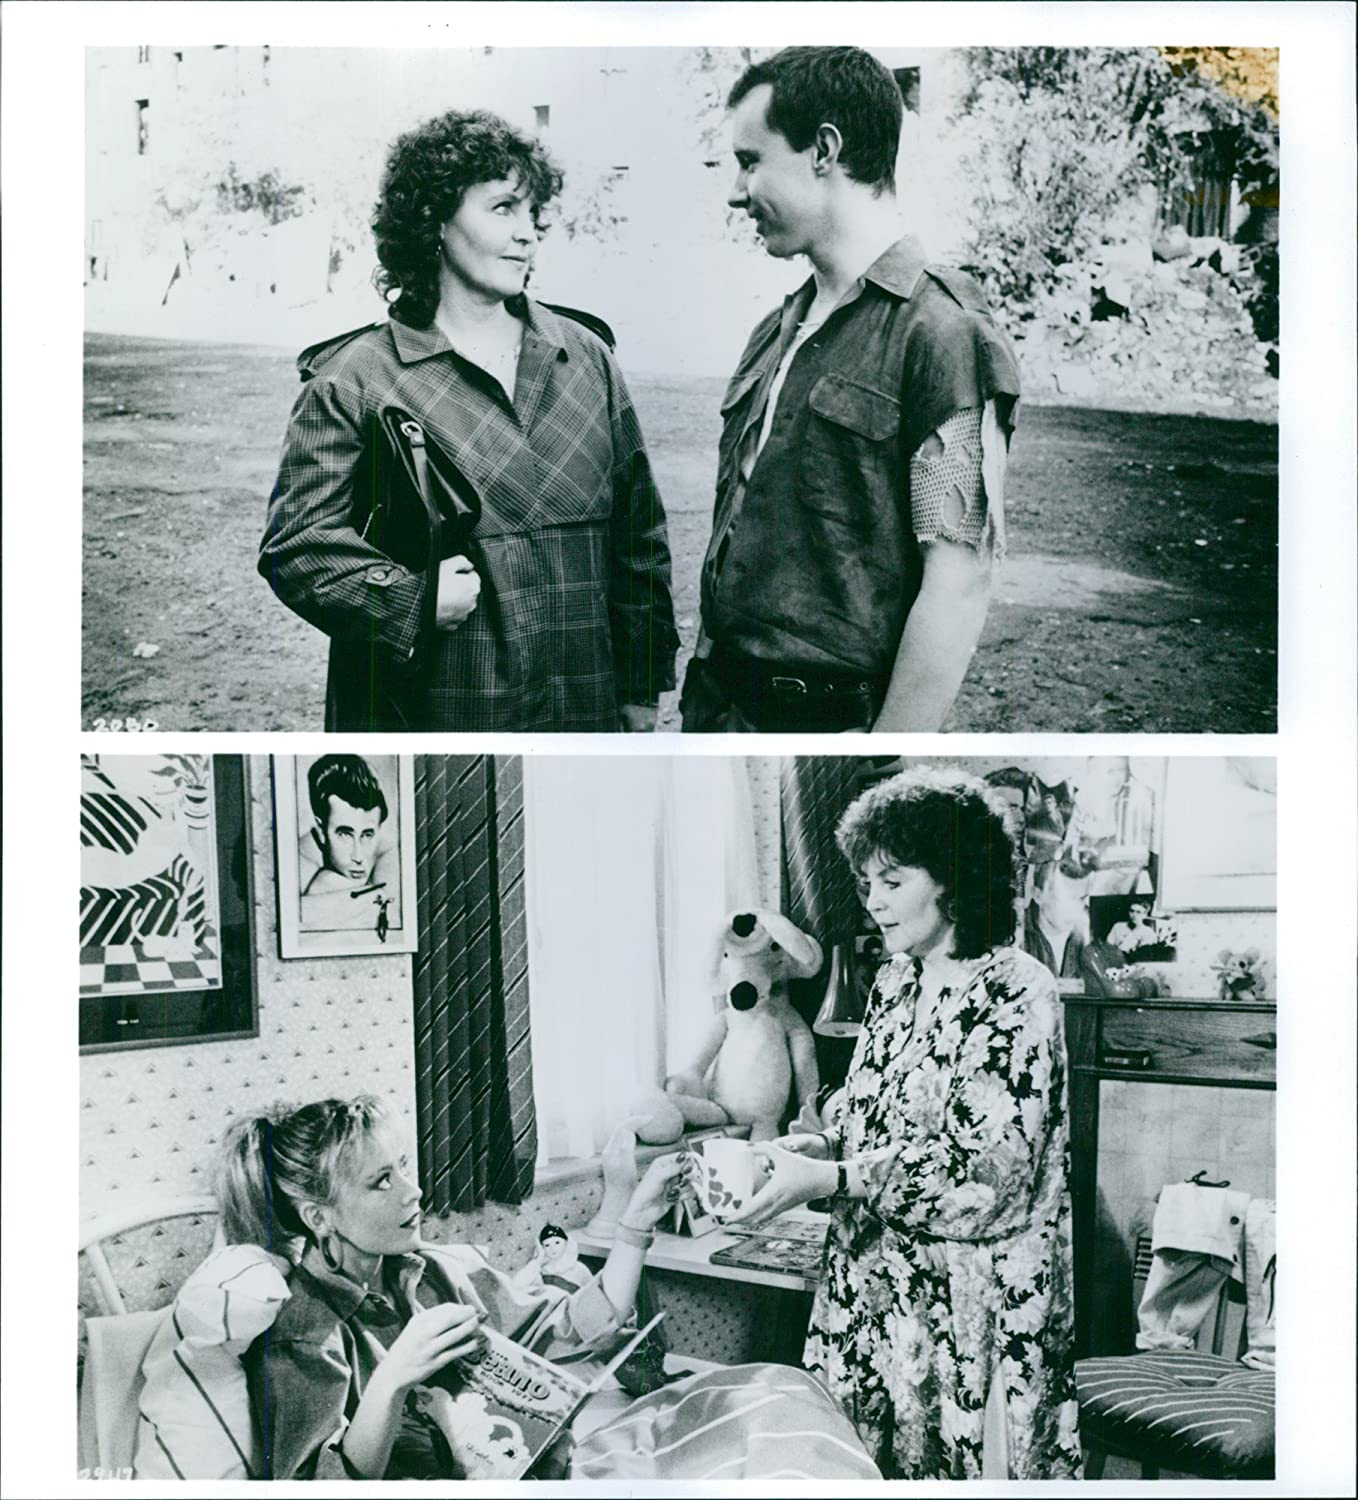 Communication on this topic: Christa Miller, pauline-collins-born-1940/